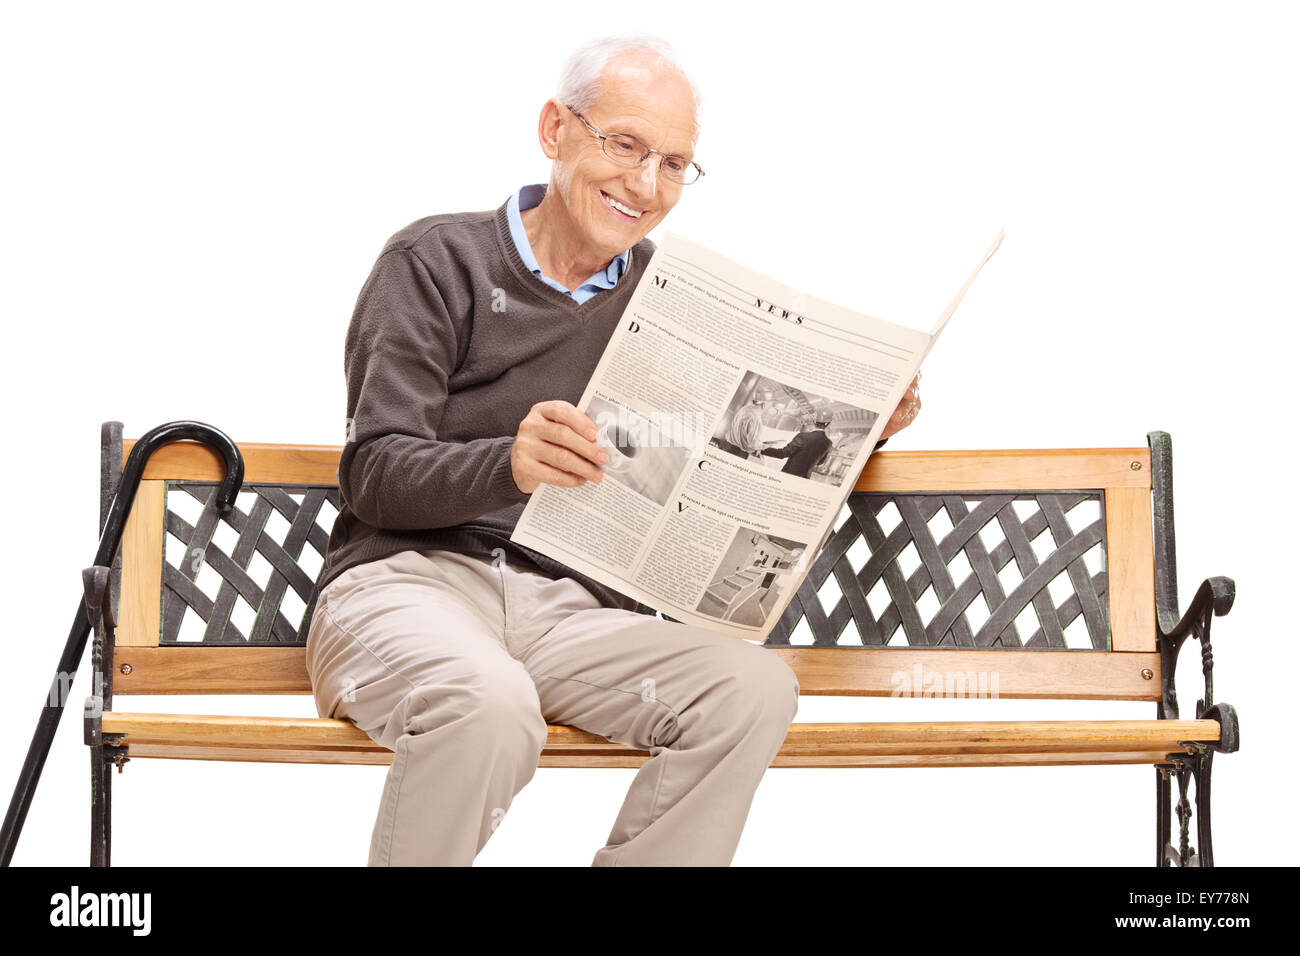 senior man reading a newspaper seated on a wooden bench isolated on